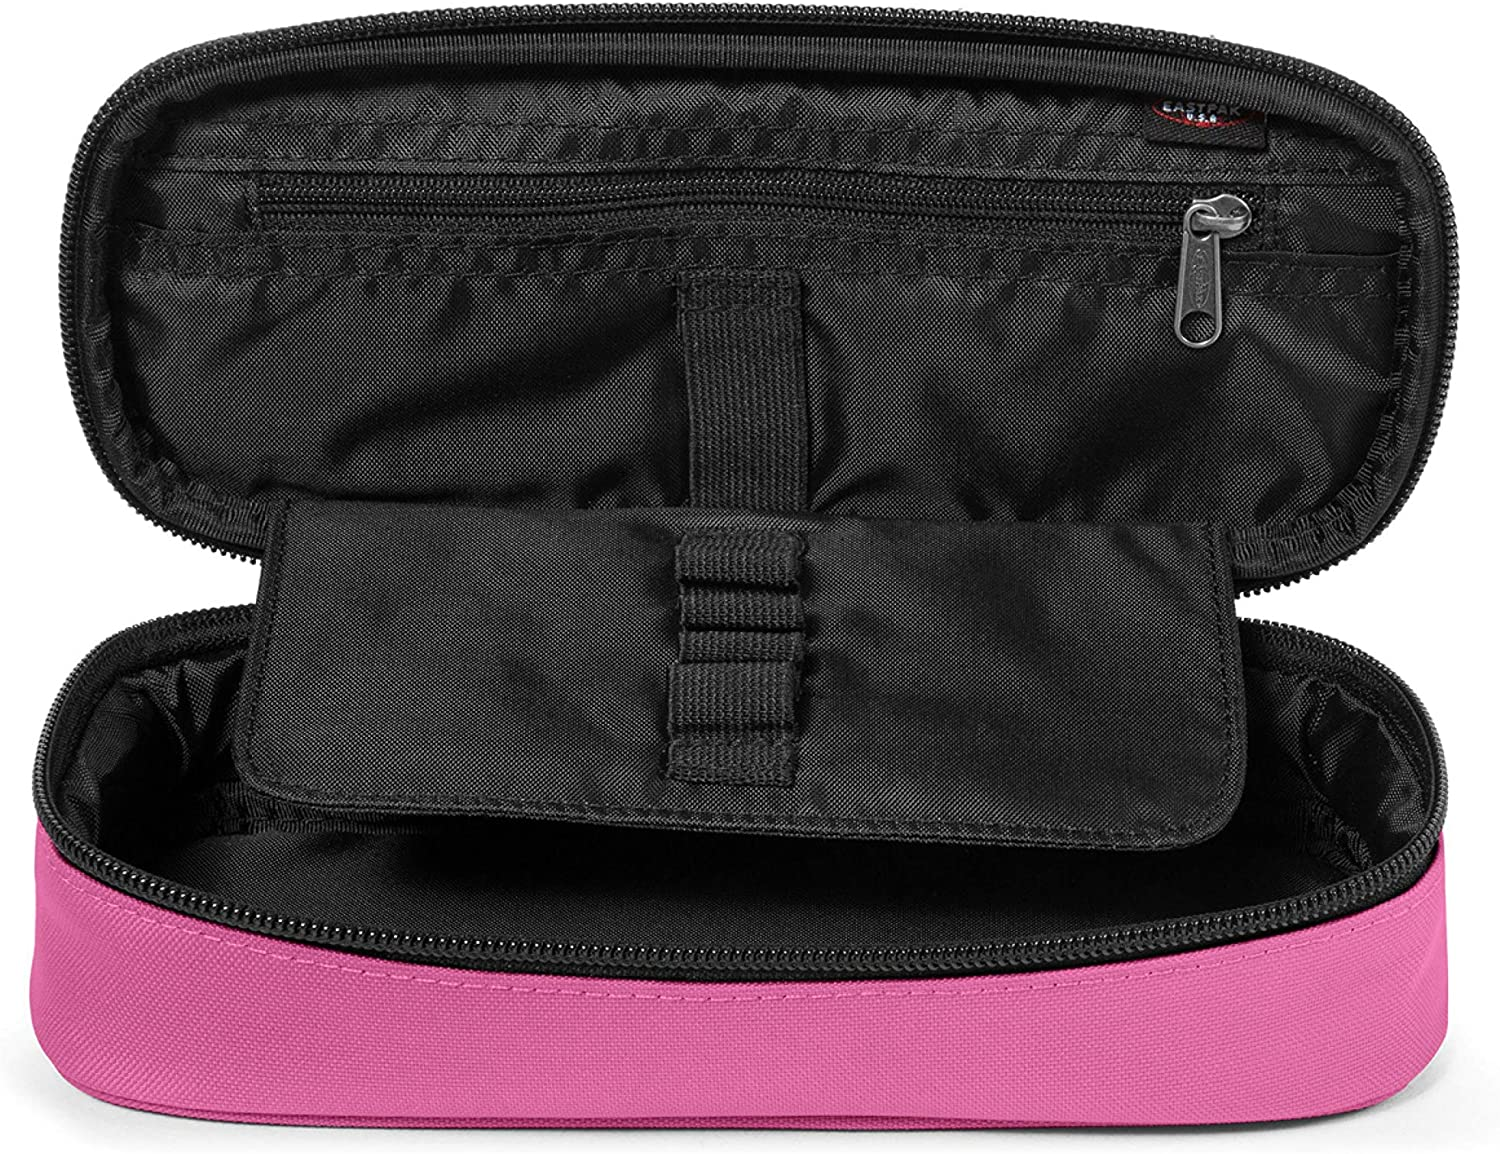 Eastpak Oval Single Rosa Organizer Borsa Unisex Adulto 22 centimeters Frisky Pink